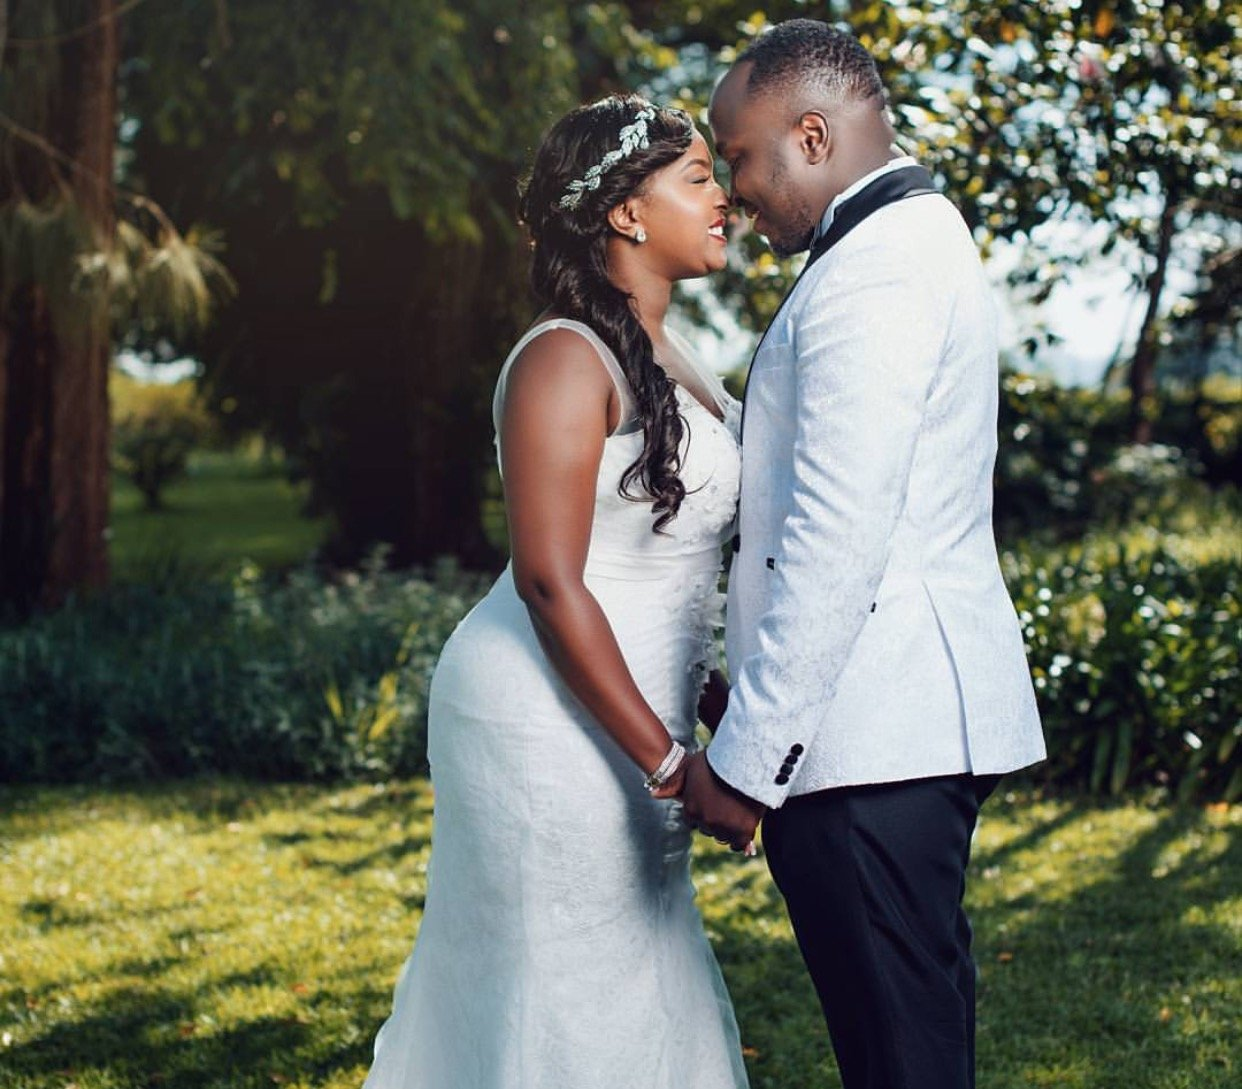 """We avoided having sex for 2 years and a half until our wedding night!"" Cece Sagini and husband open up"